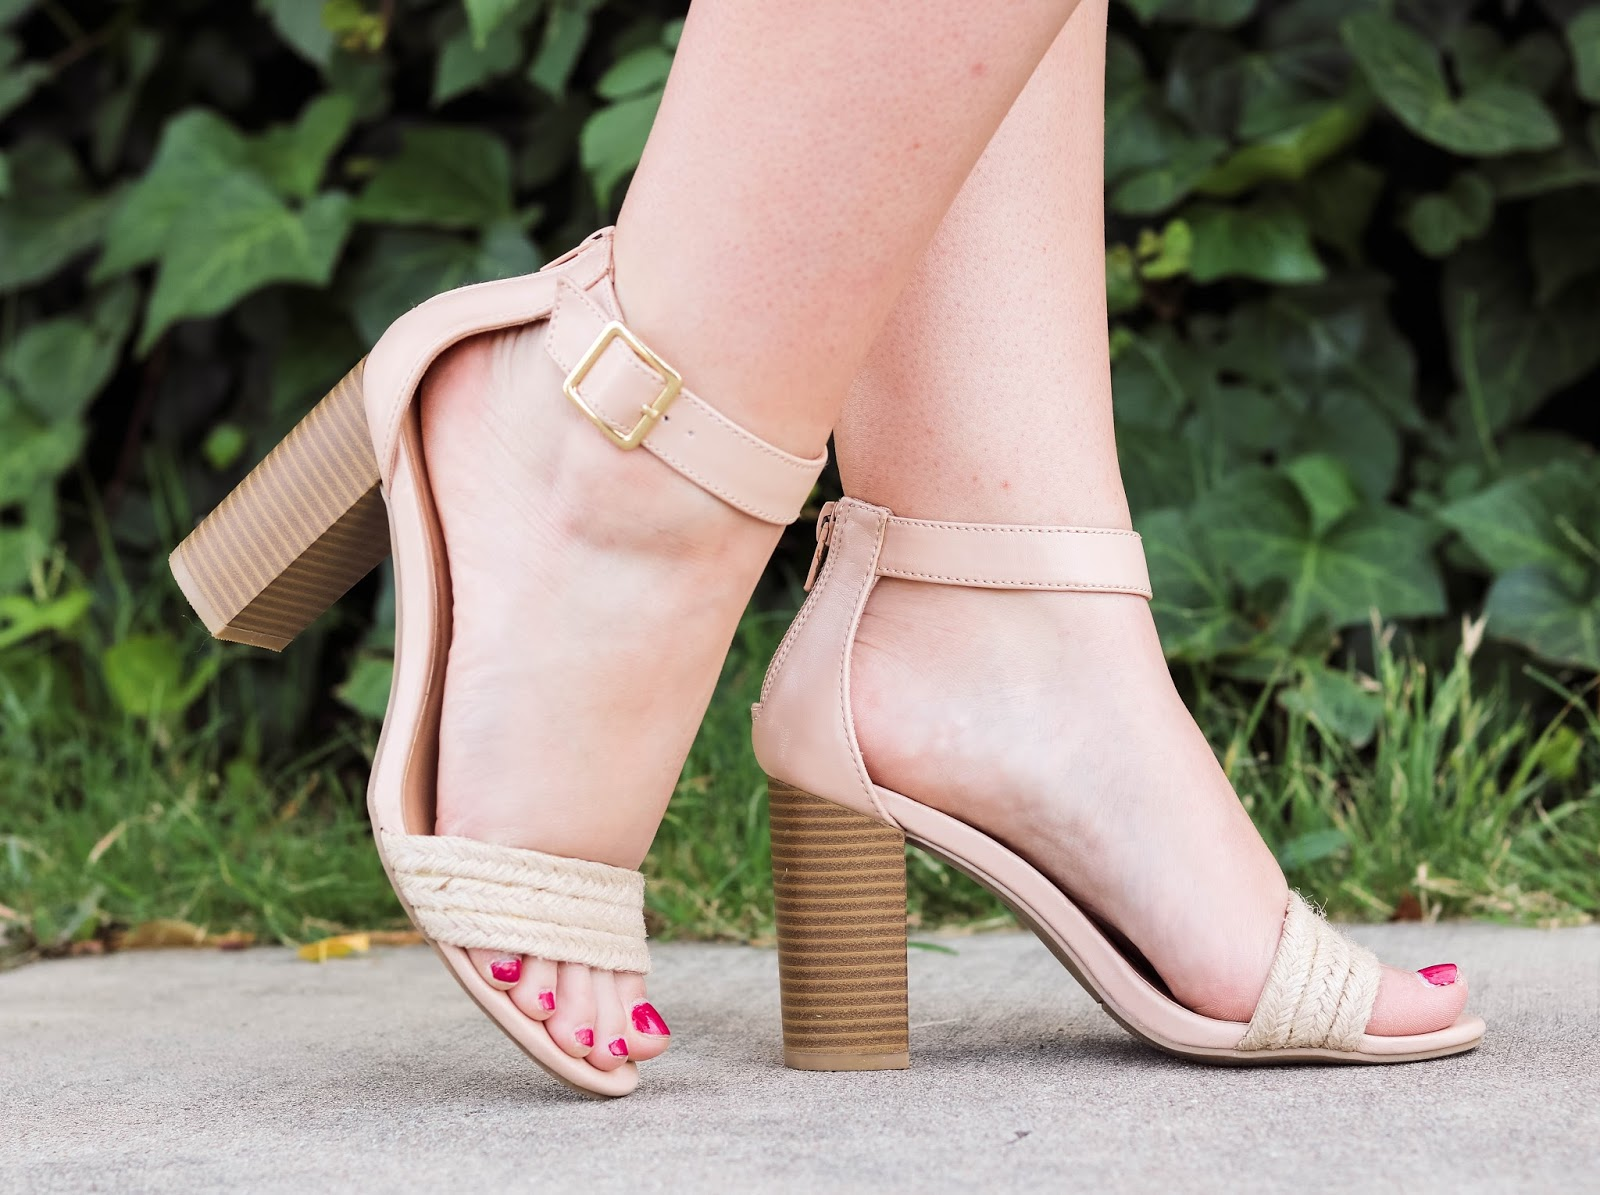 Elizabeth Hugen of Lizzie in Lace styles the Perfect nude summer sandal